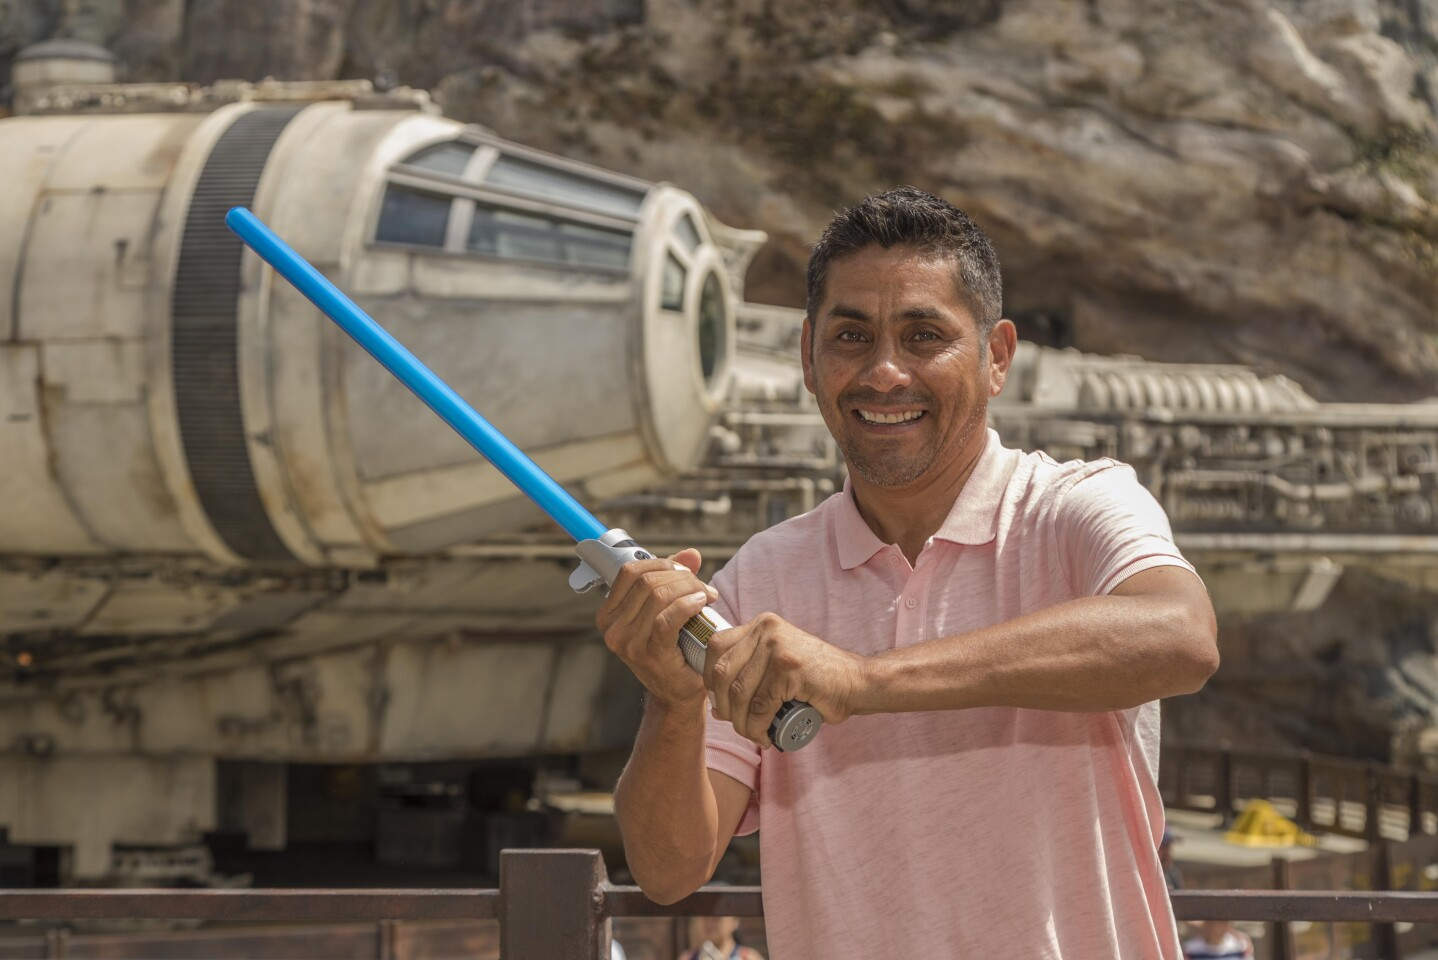 Mexican soccer legend Jorge Campos (and family) at Star Wars: Galaxy's Edge - Batuu - Black Spire Outpost - Millennium Falcon: Smugglers Run - Disneyland Park - Disneyland Resort - 7/25/19 (Joshua Sudock/Disneyland Resort)